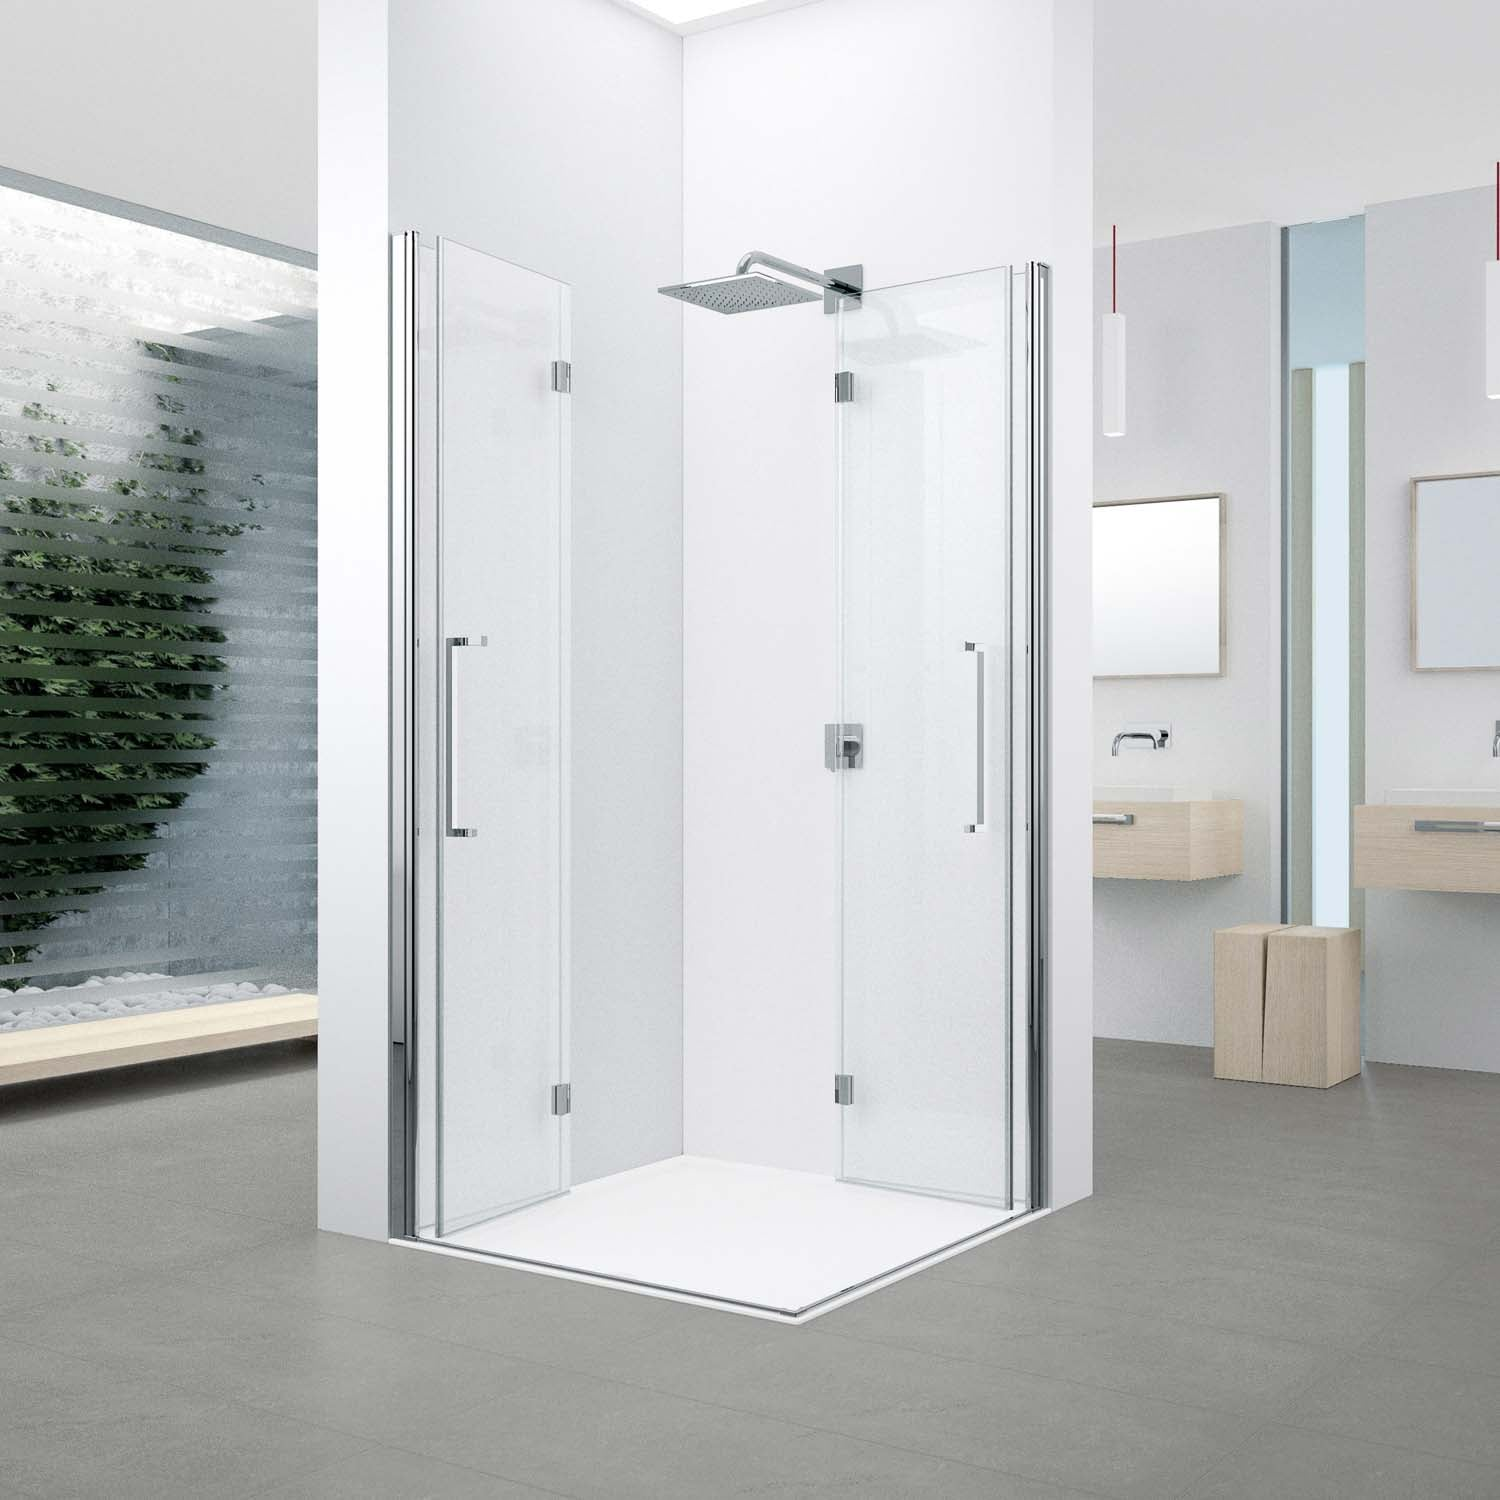 790-810mm Bliss Bi-folding Screen Frosted Glass with a chrome finish lifestyle image